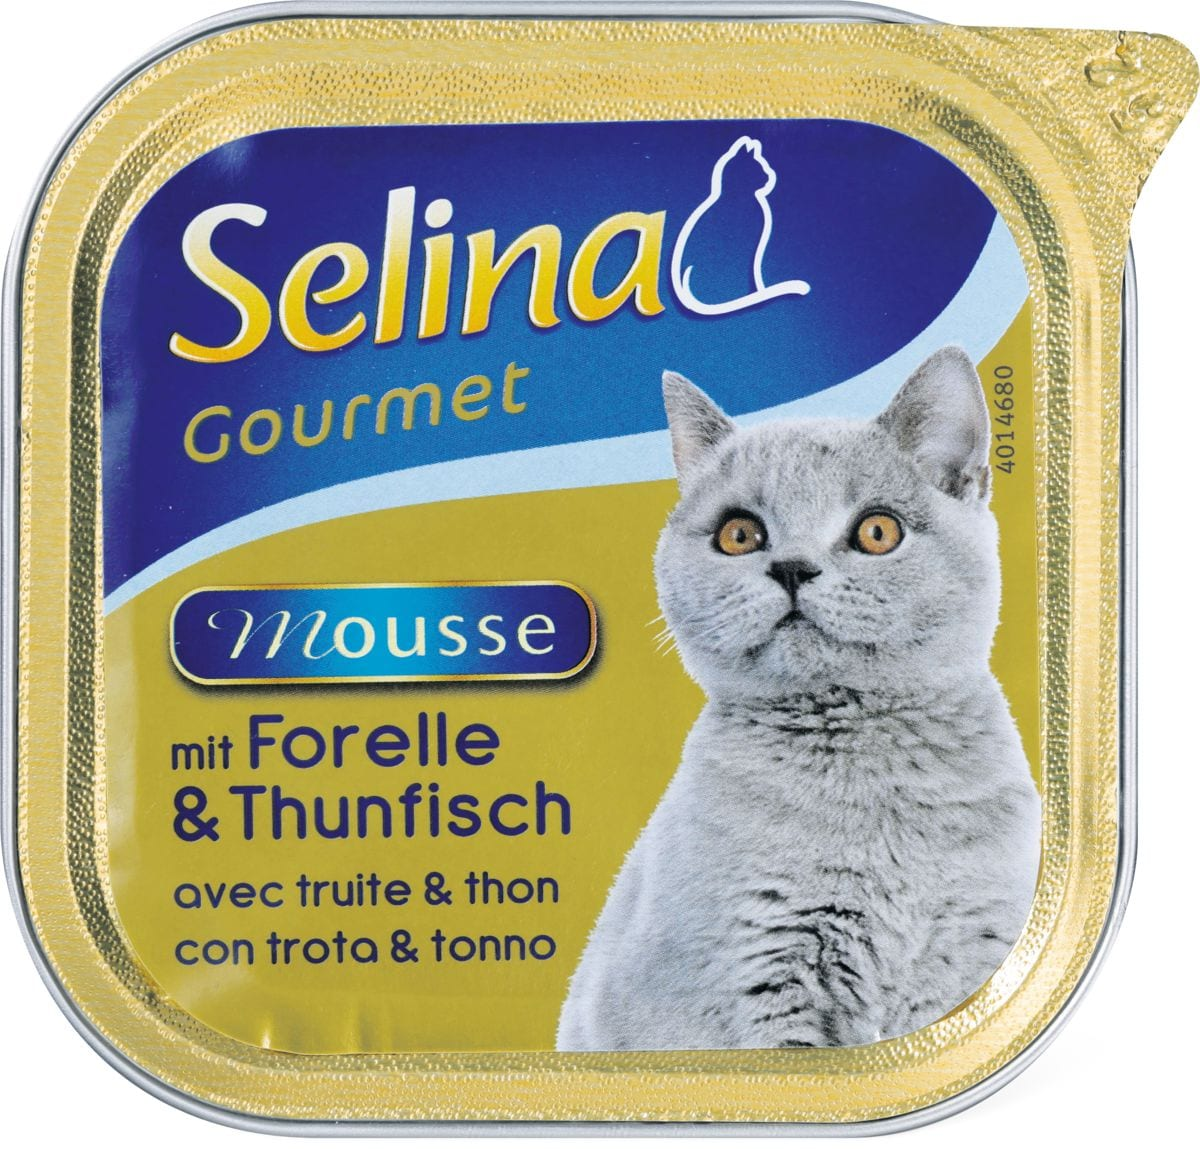 Mousse Forelle & Thunfisch